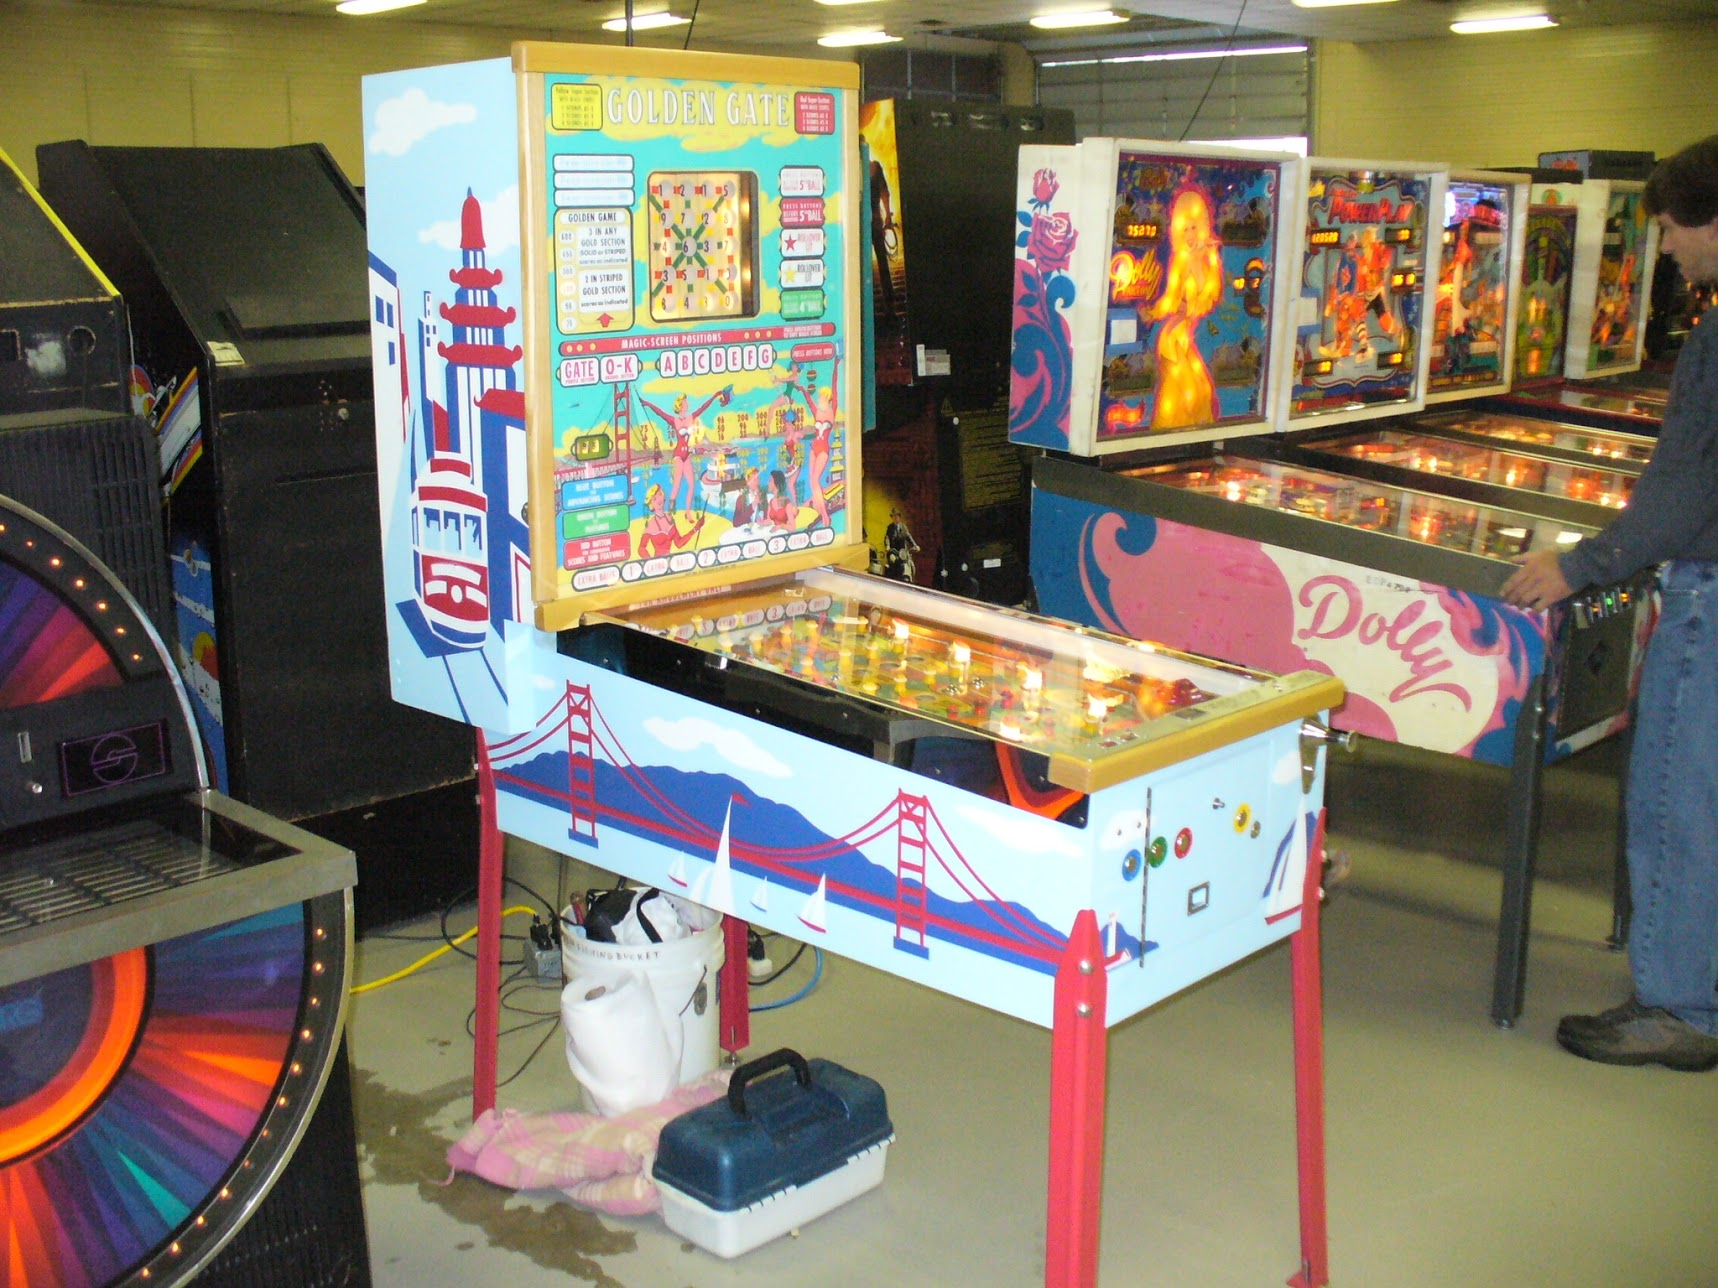 Steve's beautifully restored 'Golden Gate' at the White Rose Gameroom show  a few years ago.